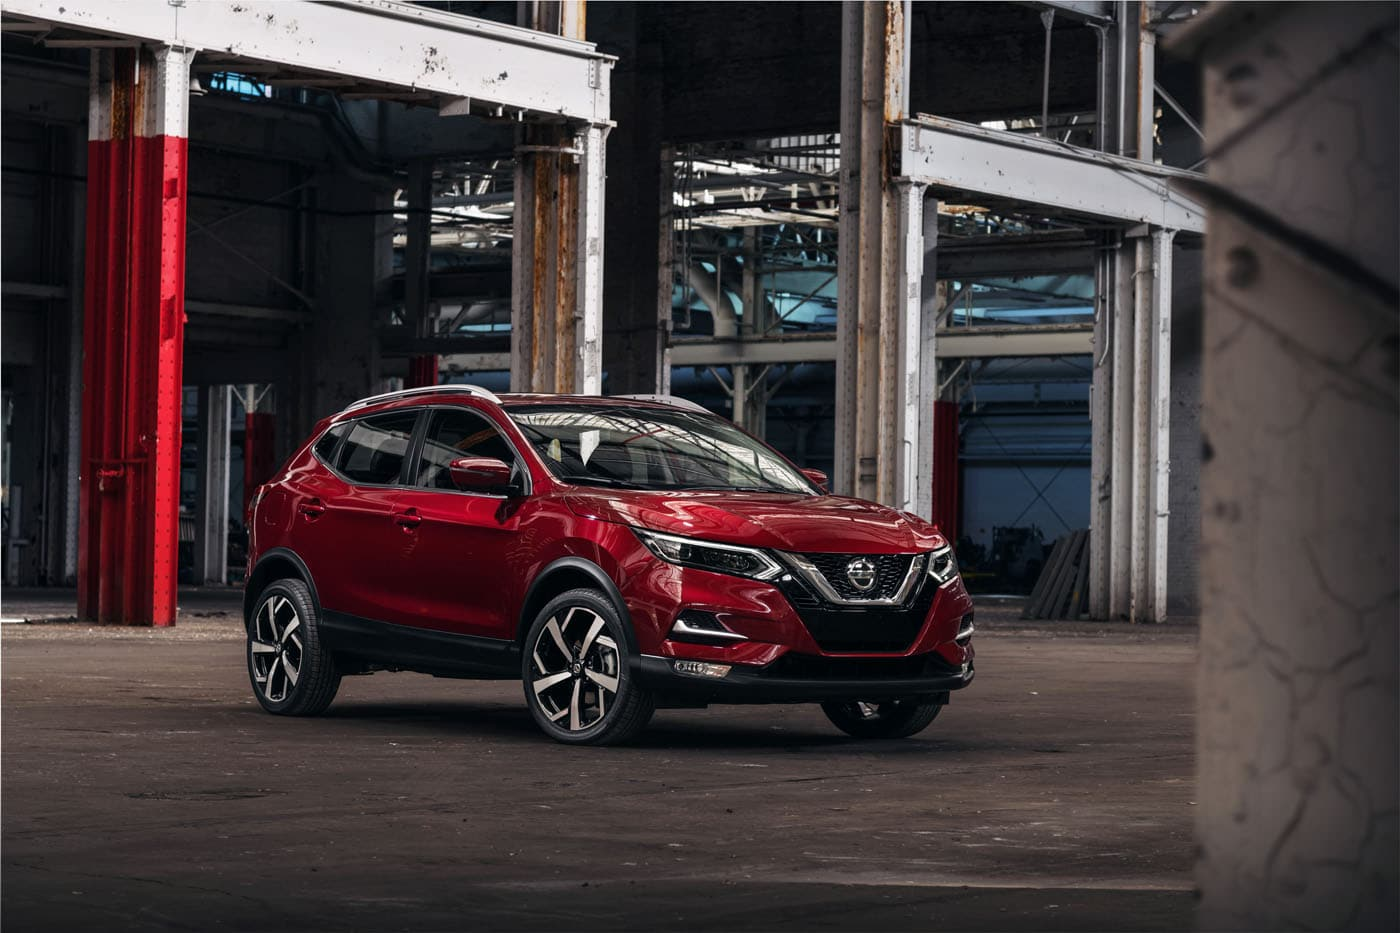 Vw For Sale >> 2020 Nissan Qashqai Arrives at Chicago Auto Show - Motor Illustrated